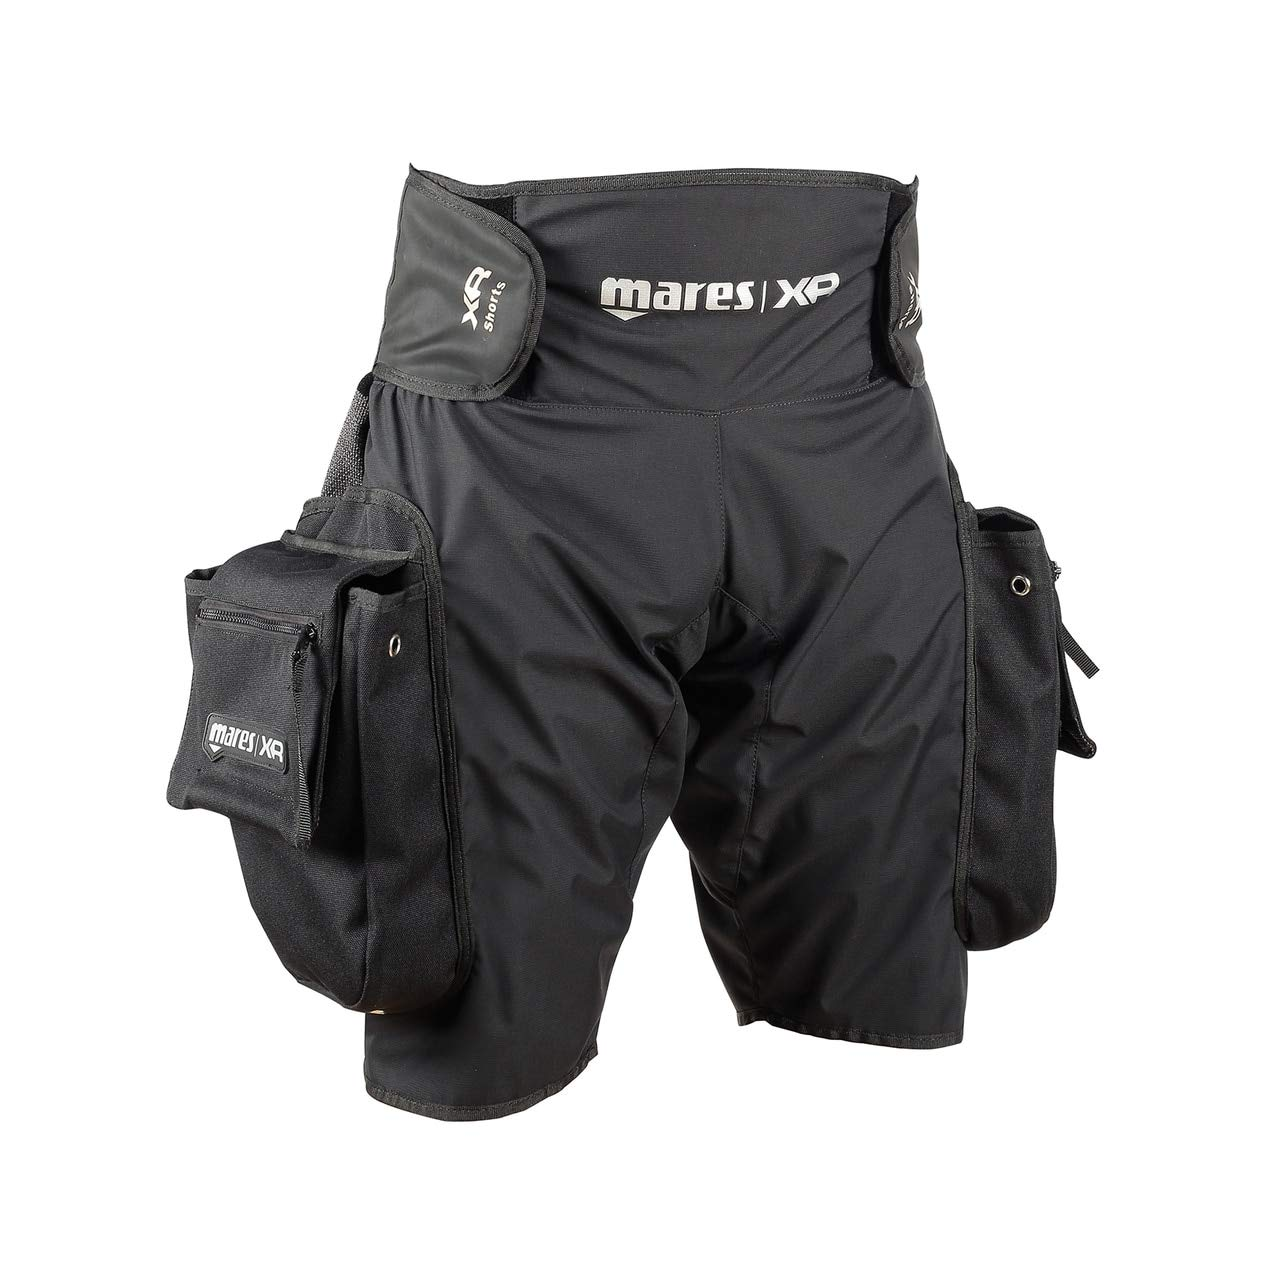 s Mares Tek Shorts (3XLG) by Mares